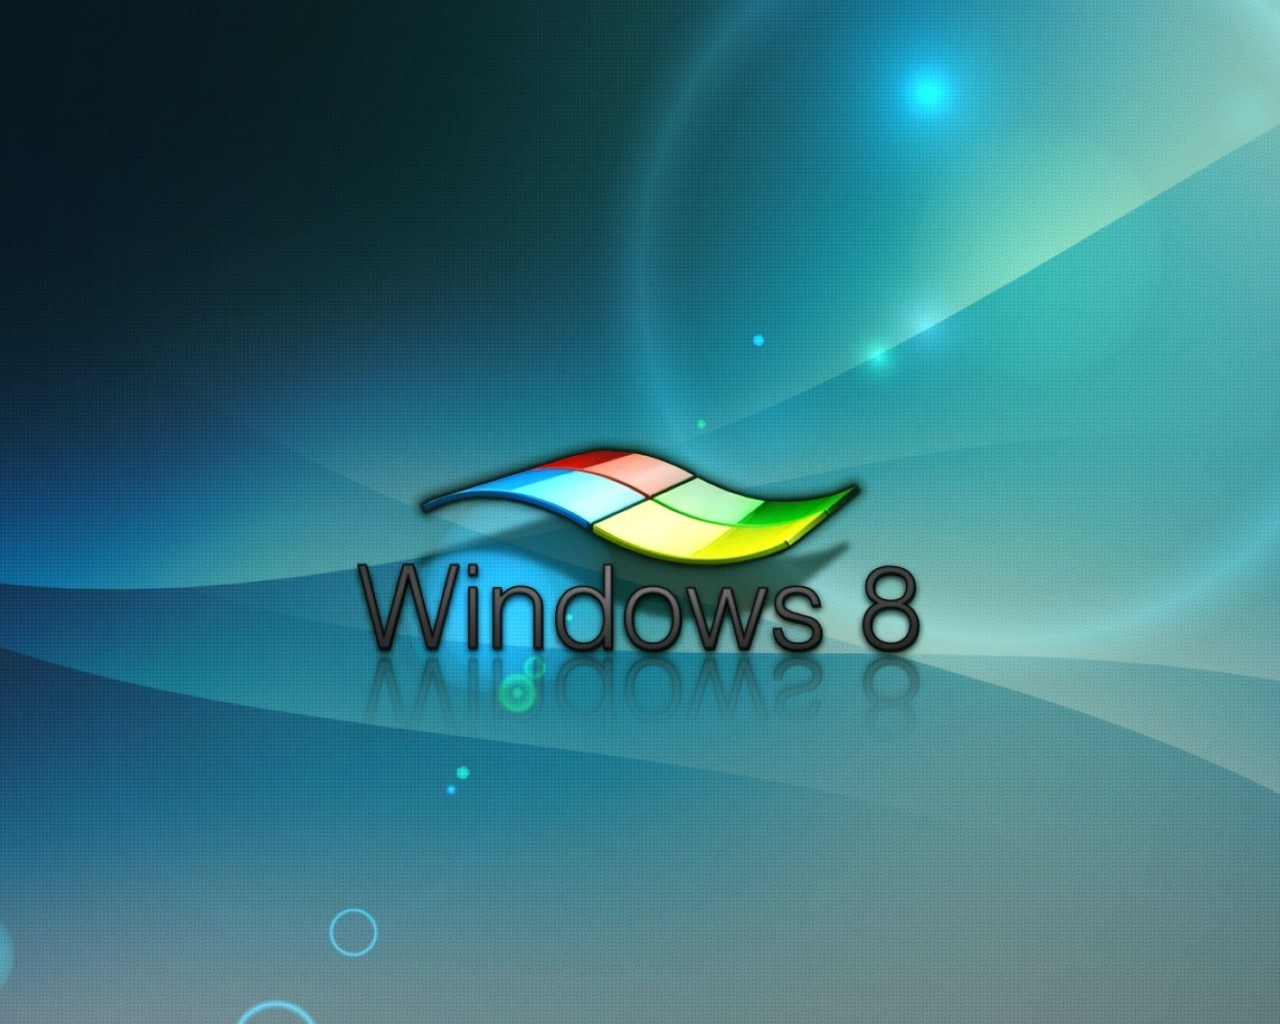 3d hd for windows 8 wallpaper: desktop hd wallpaper - download free